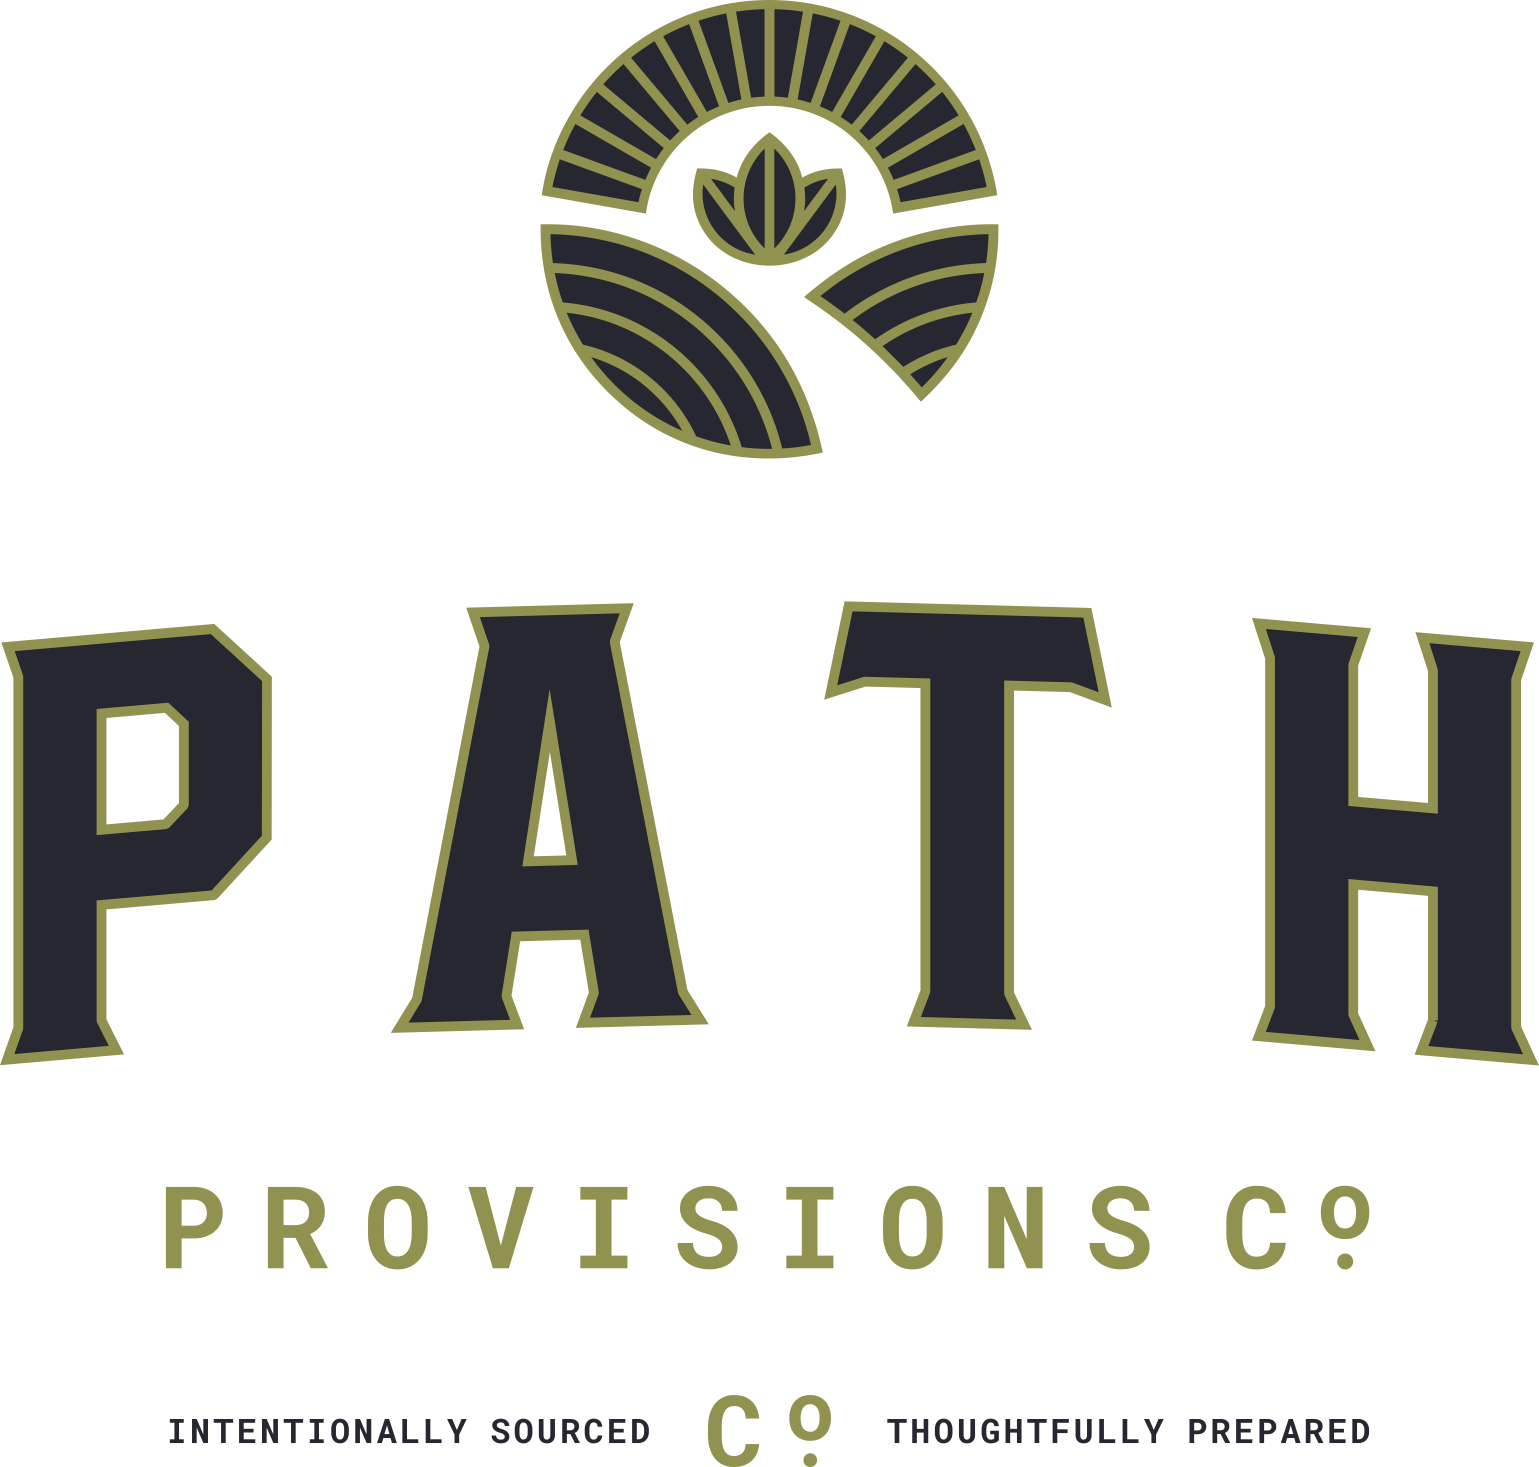 Create a logo that evokes wellness and sustainability for Path (a new restaurant)